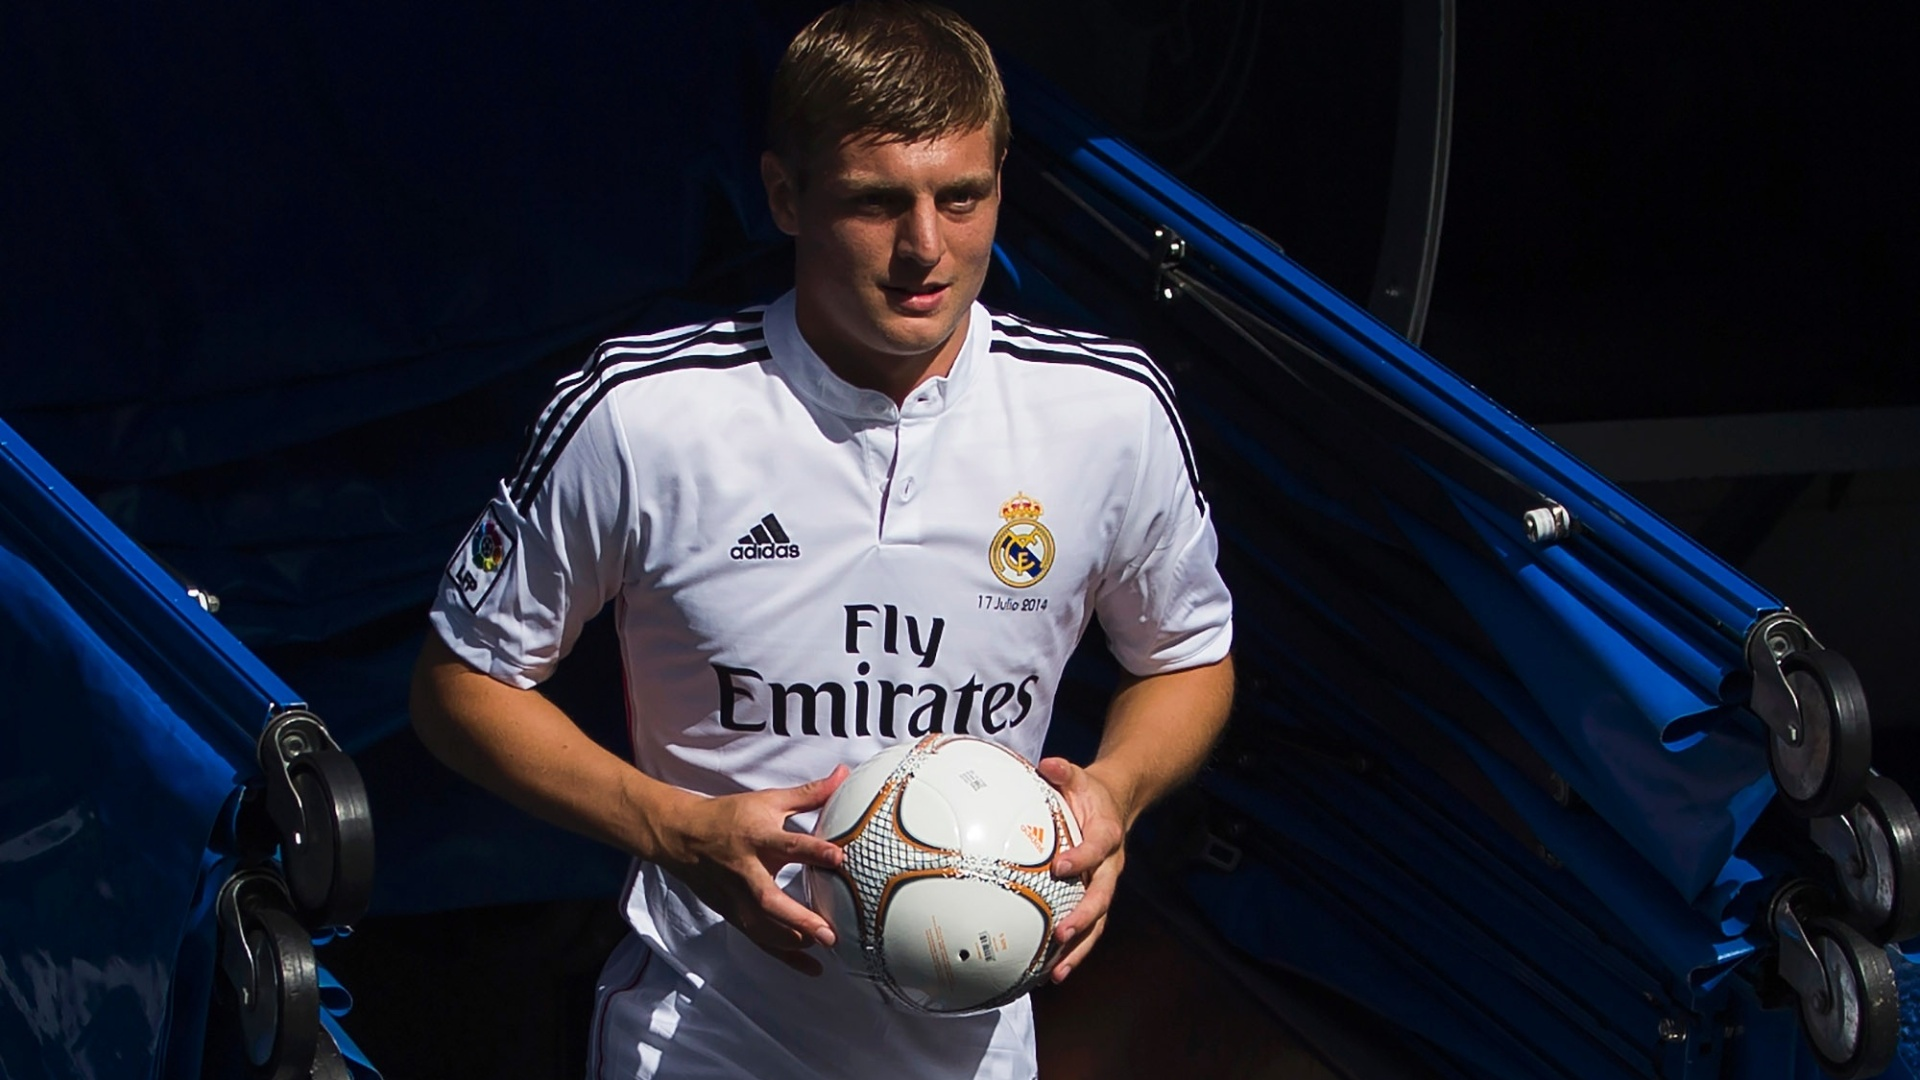 Will Toni Kroos be able to make a stand at Real Madrid's strong midfield line?